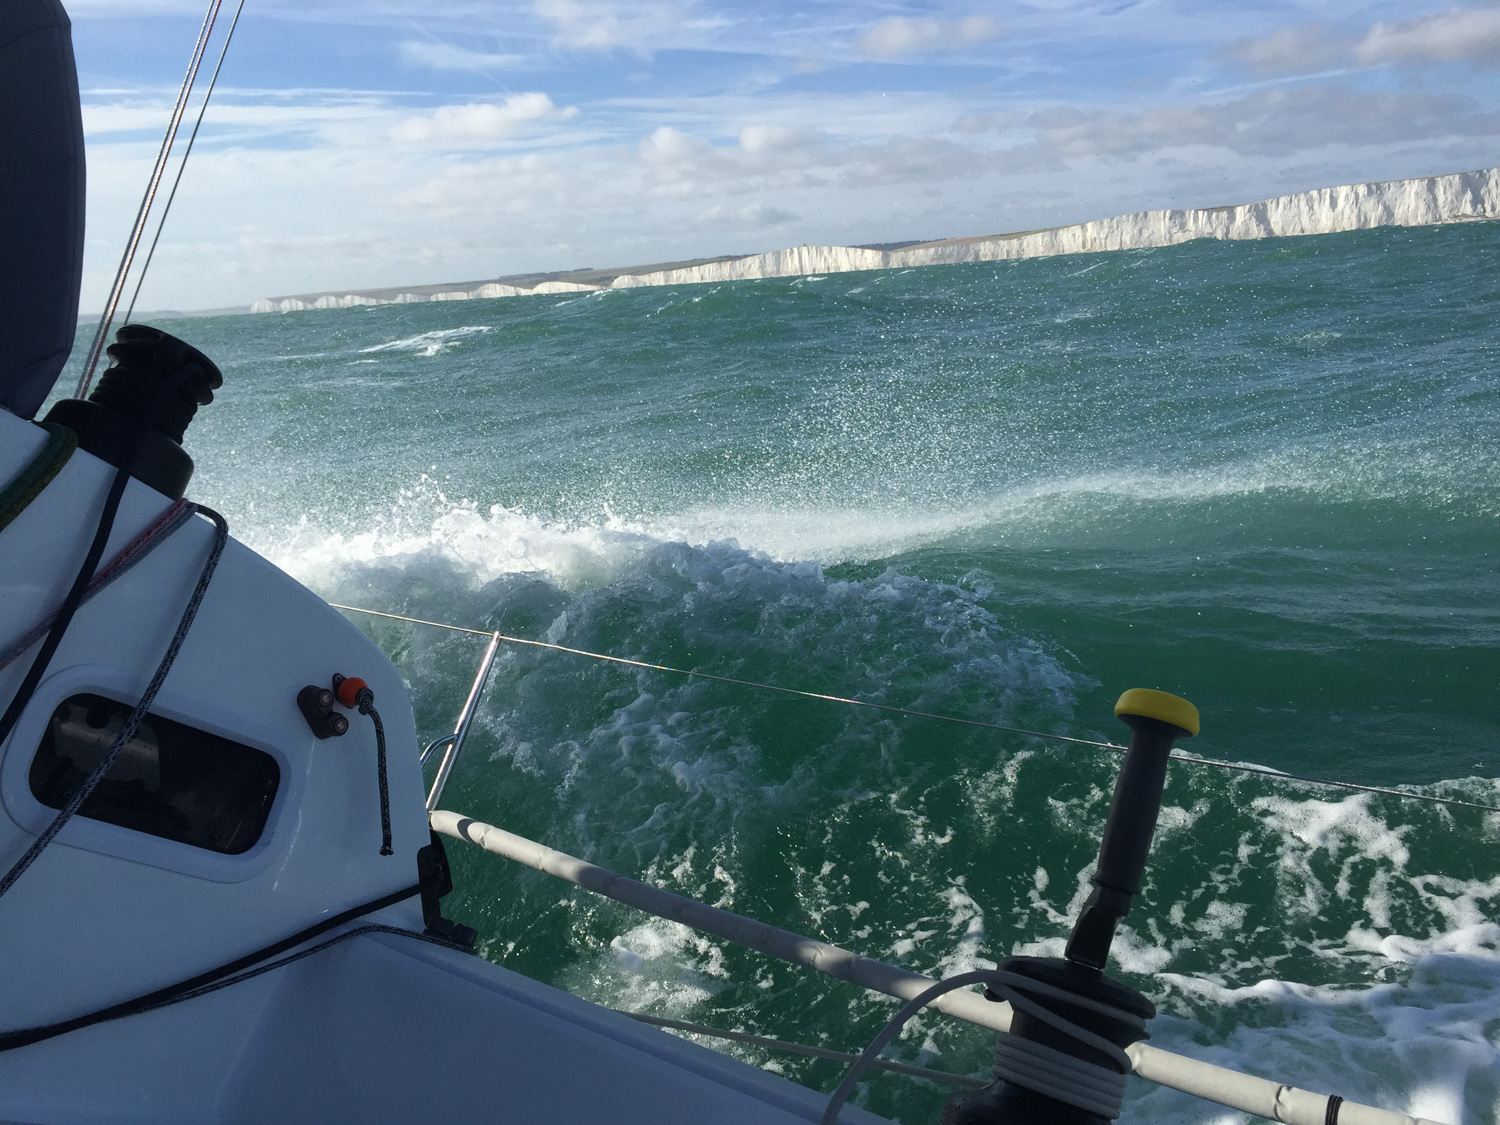 hollandtocowes-sevensisters